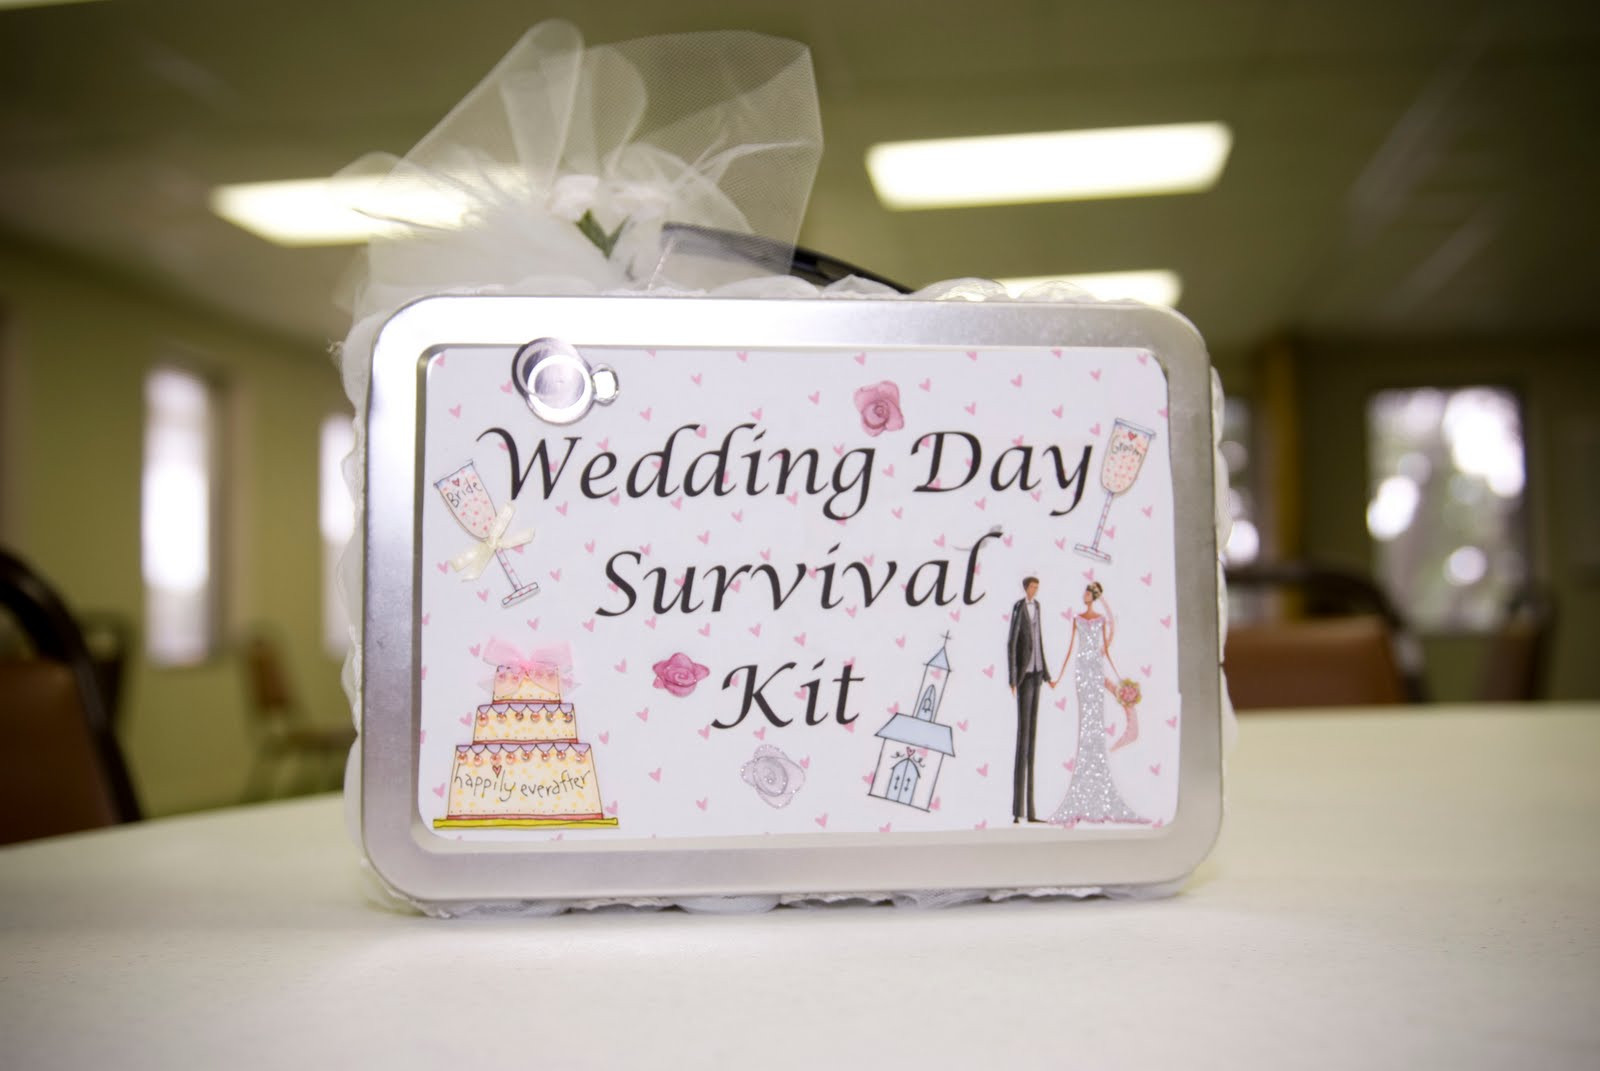 Best ideas about Best Wedding Gift Ideas . Save or Pin Top 10 Best Bridal Shower Gift Ideas on Wedding Invitation Now.